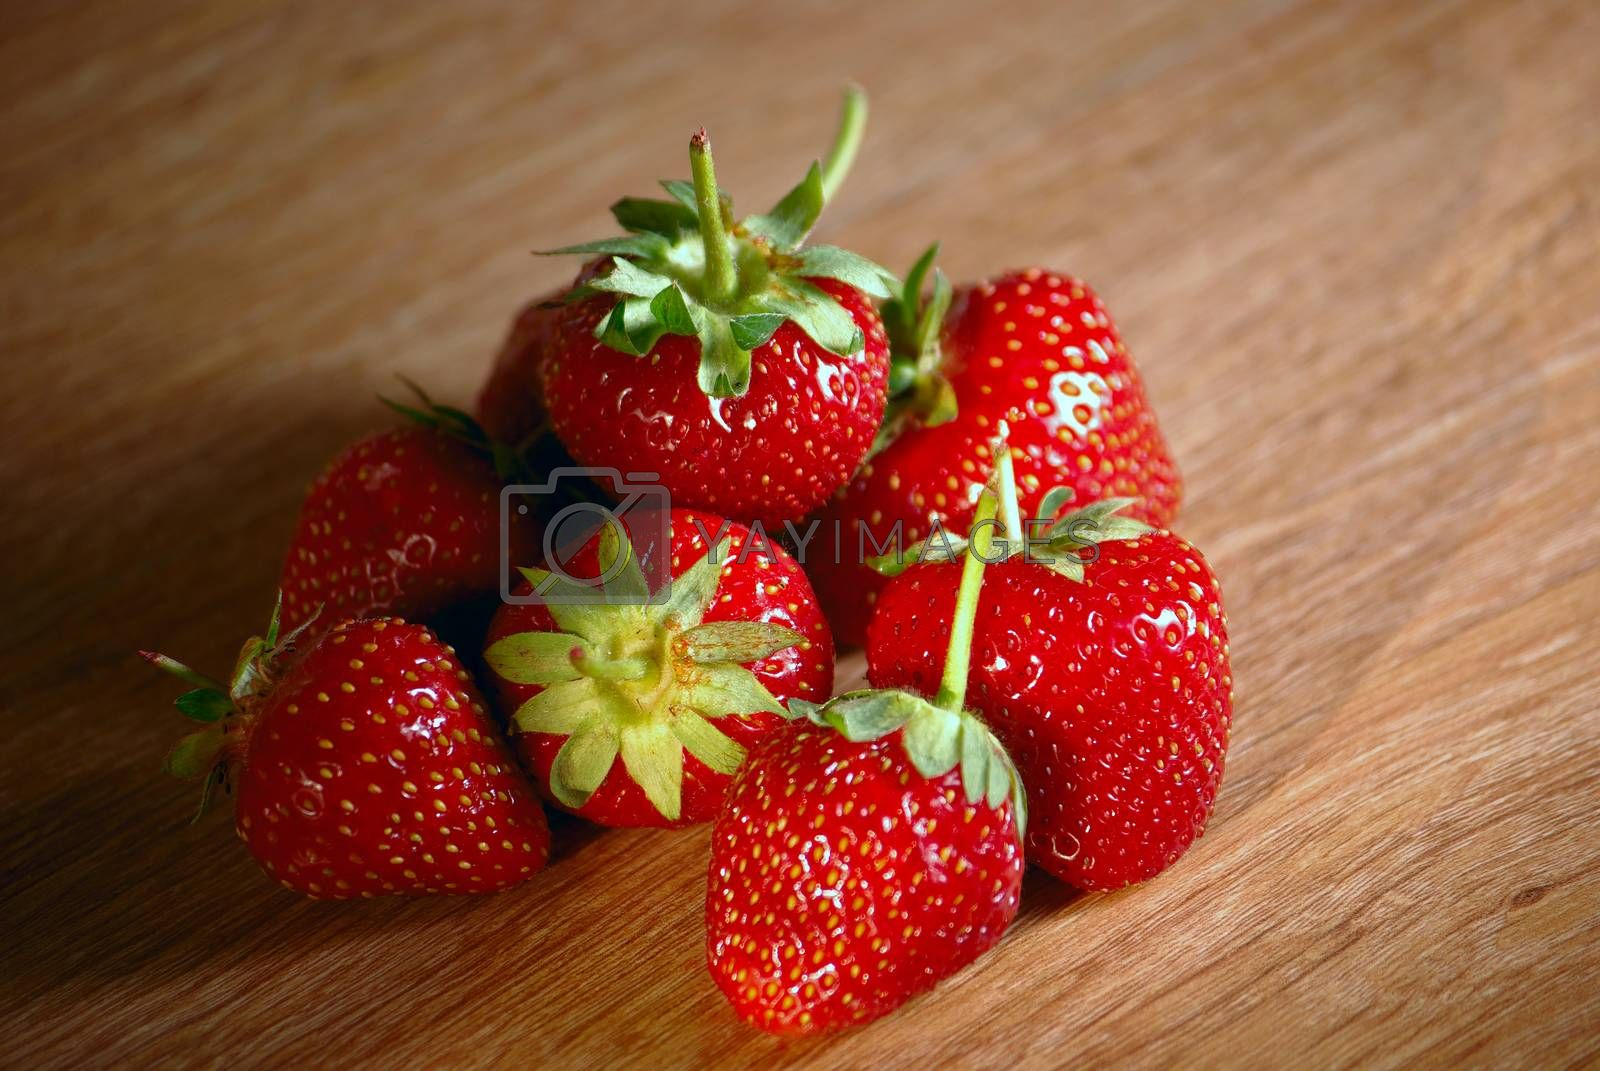 Fresh ripe red strawberries with leaves on the table